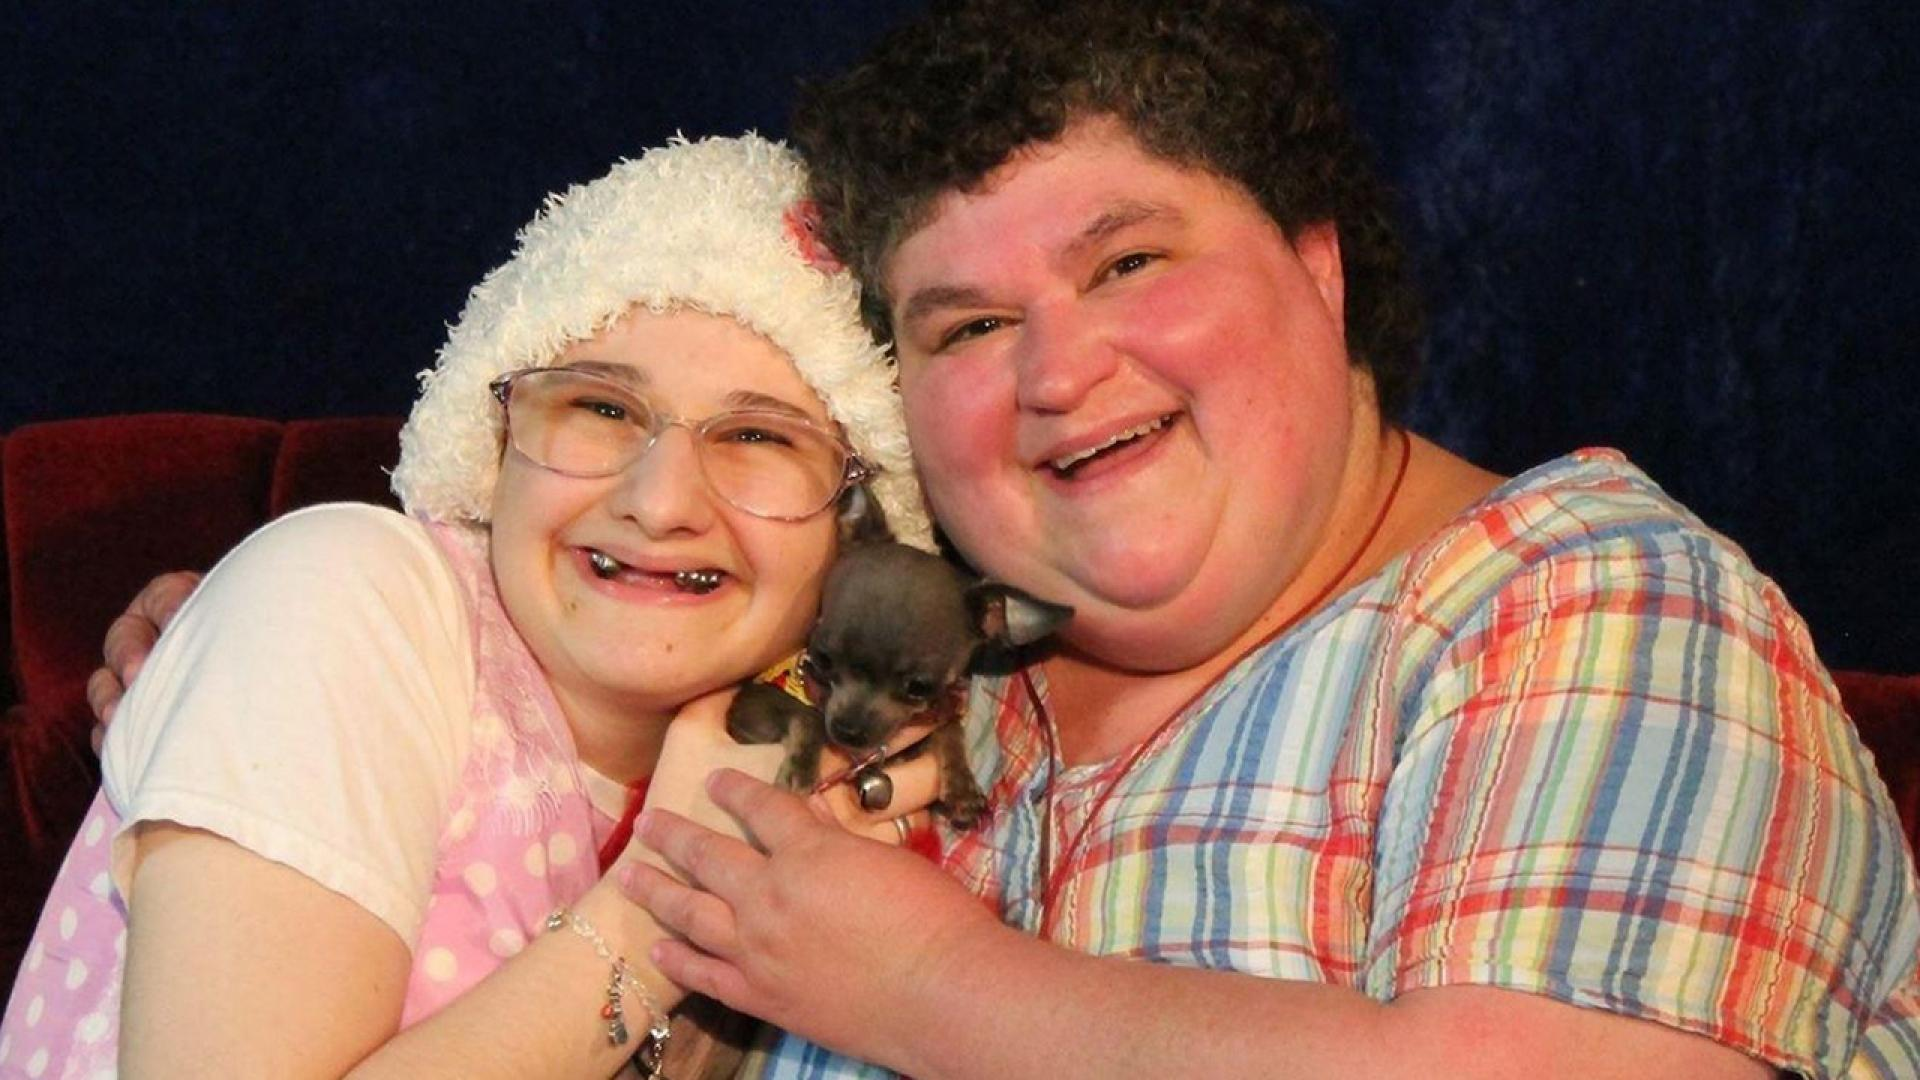 Gypsy Rose Blanchard (left) was arrested in the killing of her mother, Dee Dee Blanchard (right), who authorities said had Munchhausen's by Proxy and made her daughter sick.